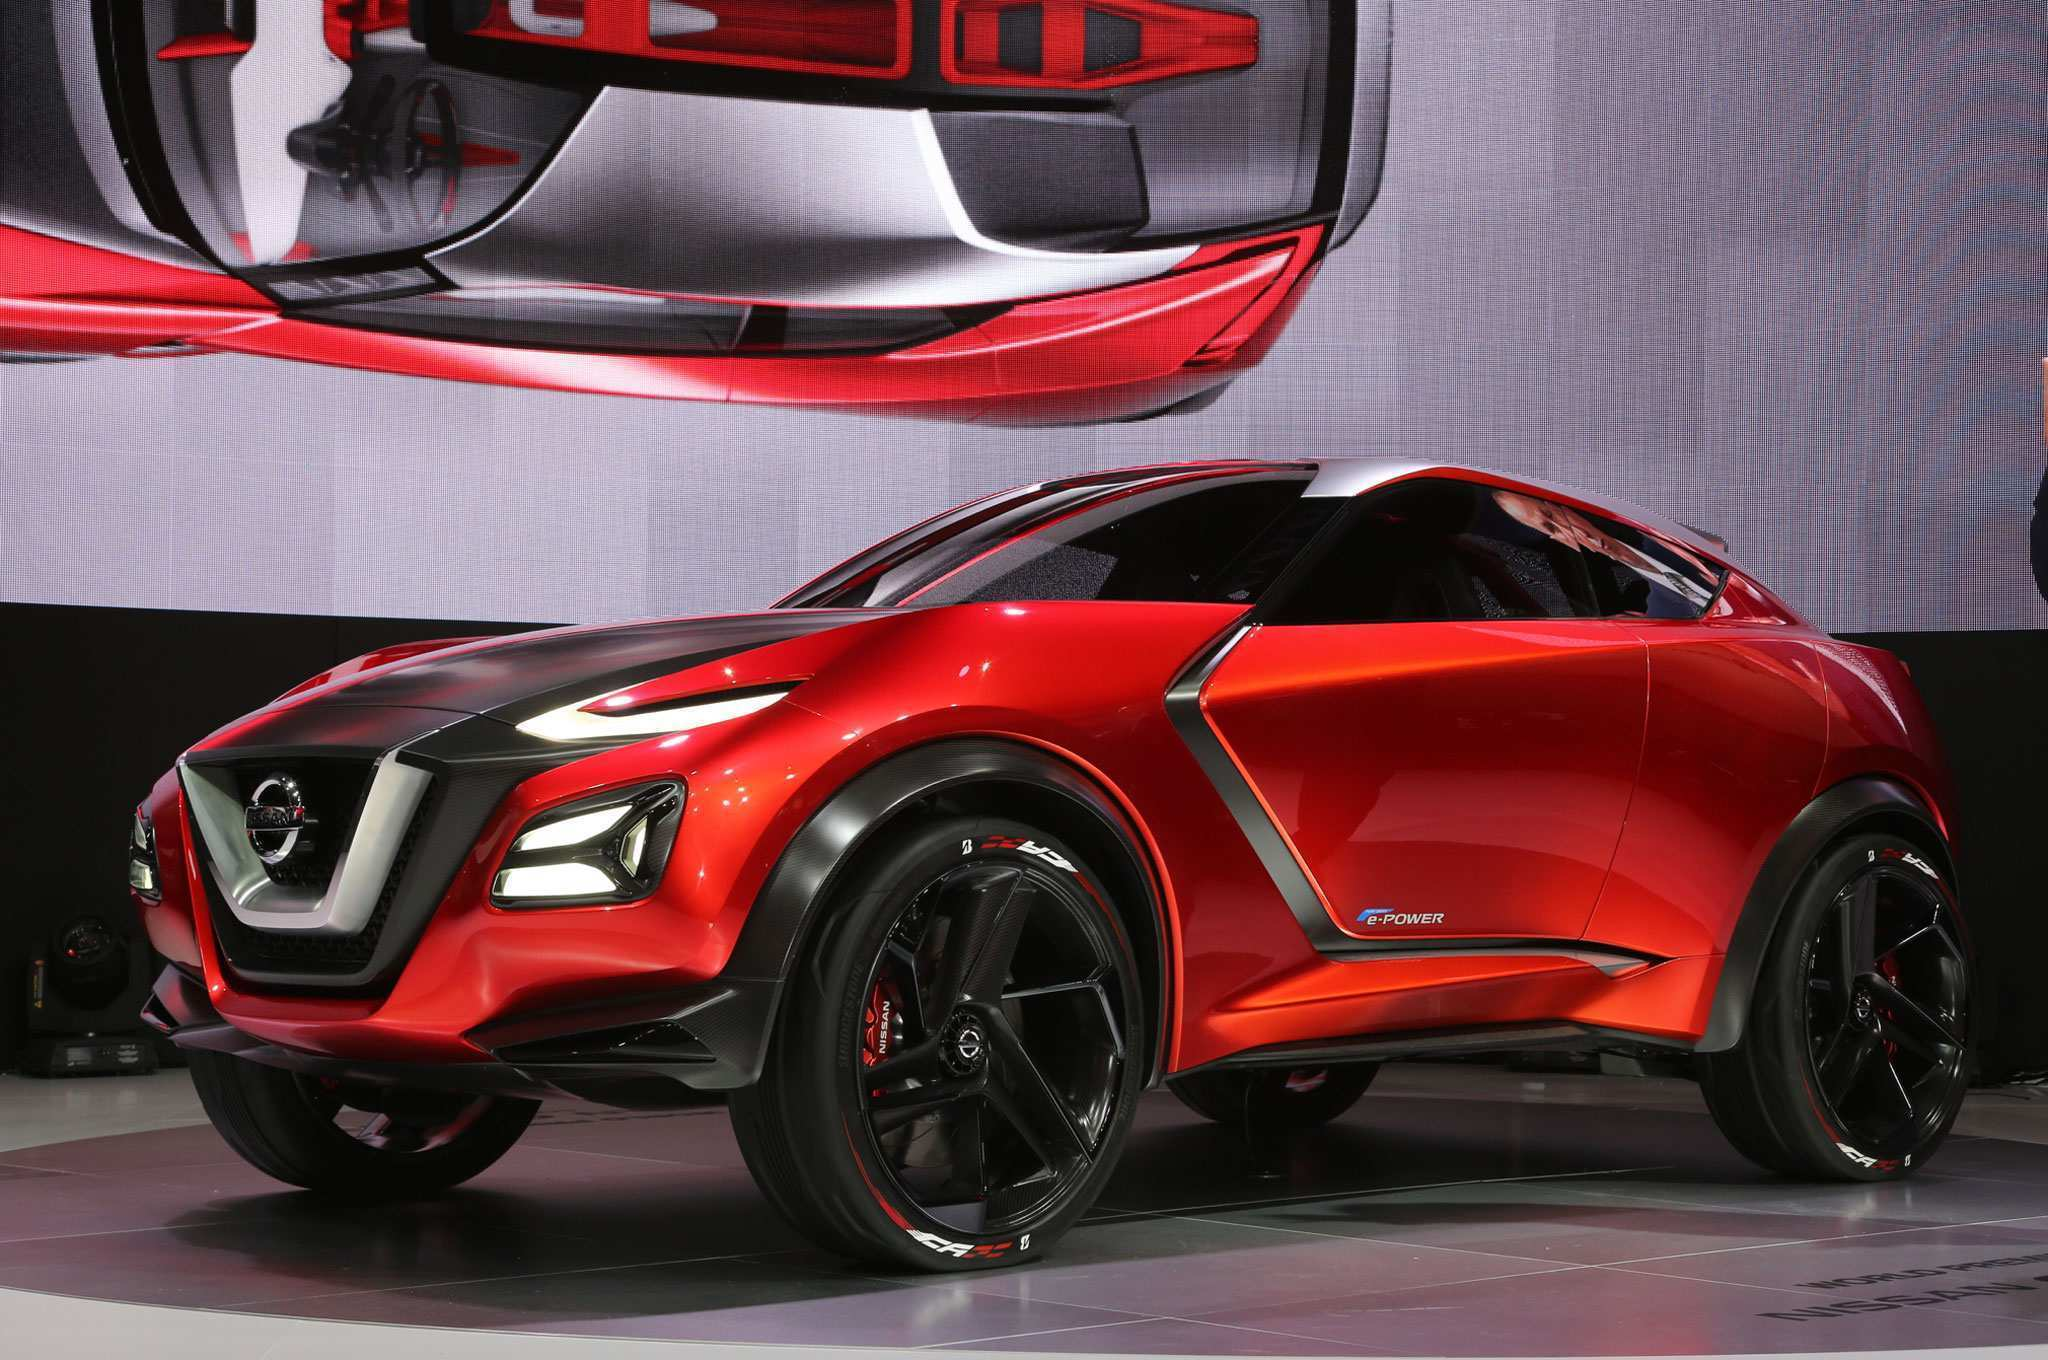 24 Great 2019 Nissan Gripz Model with 2019 Nissan Gripz